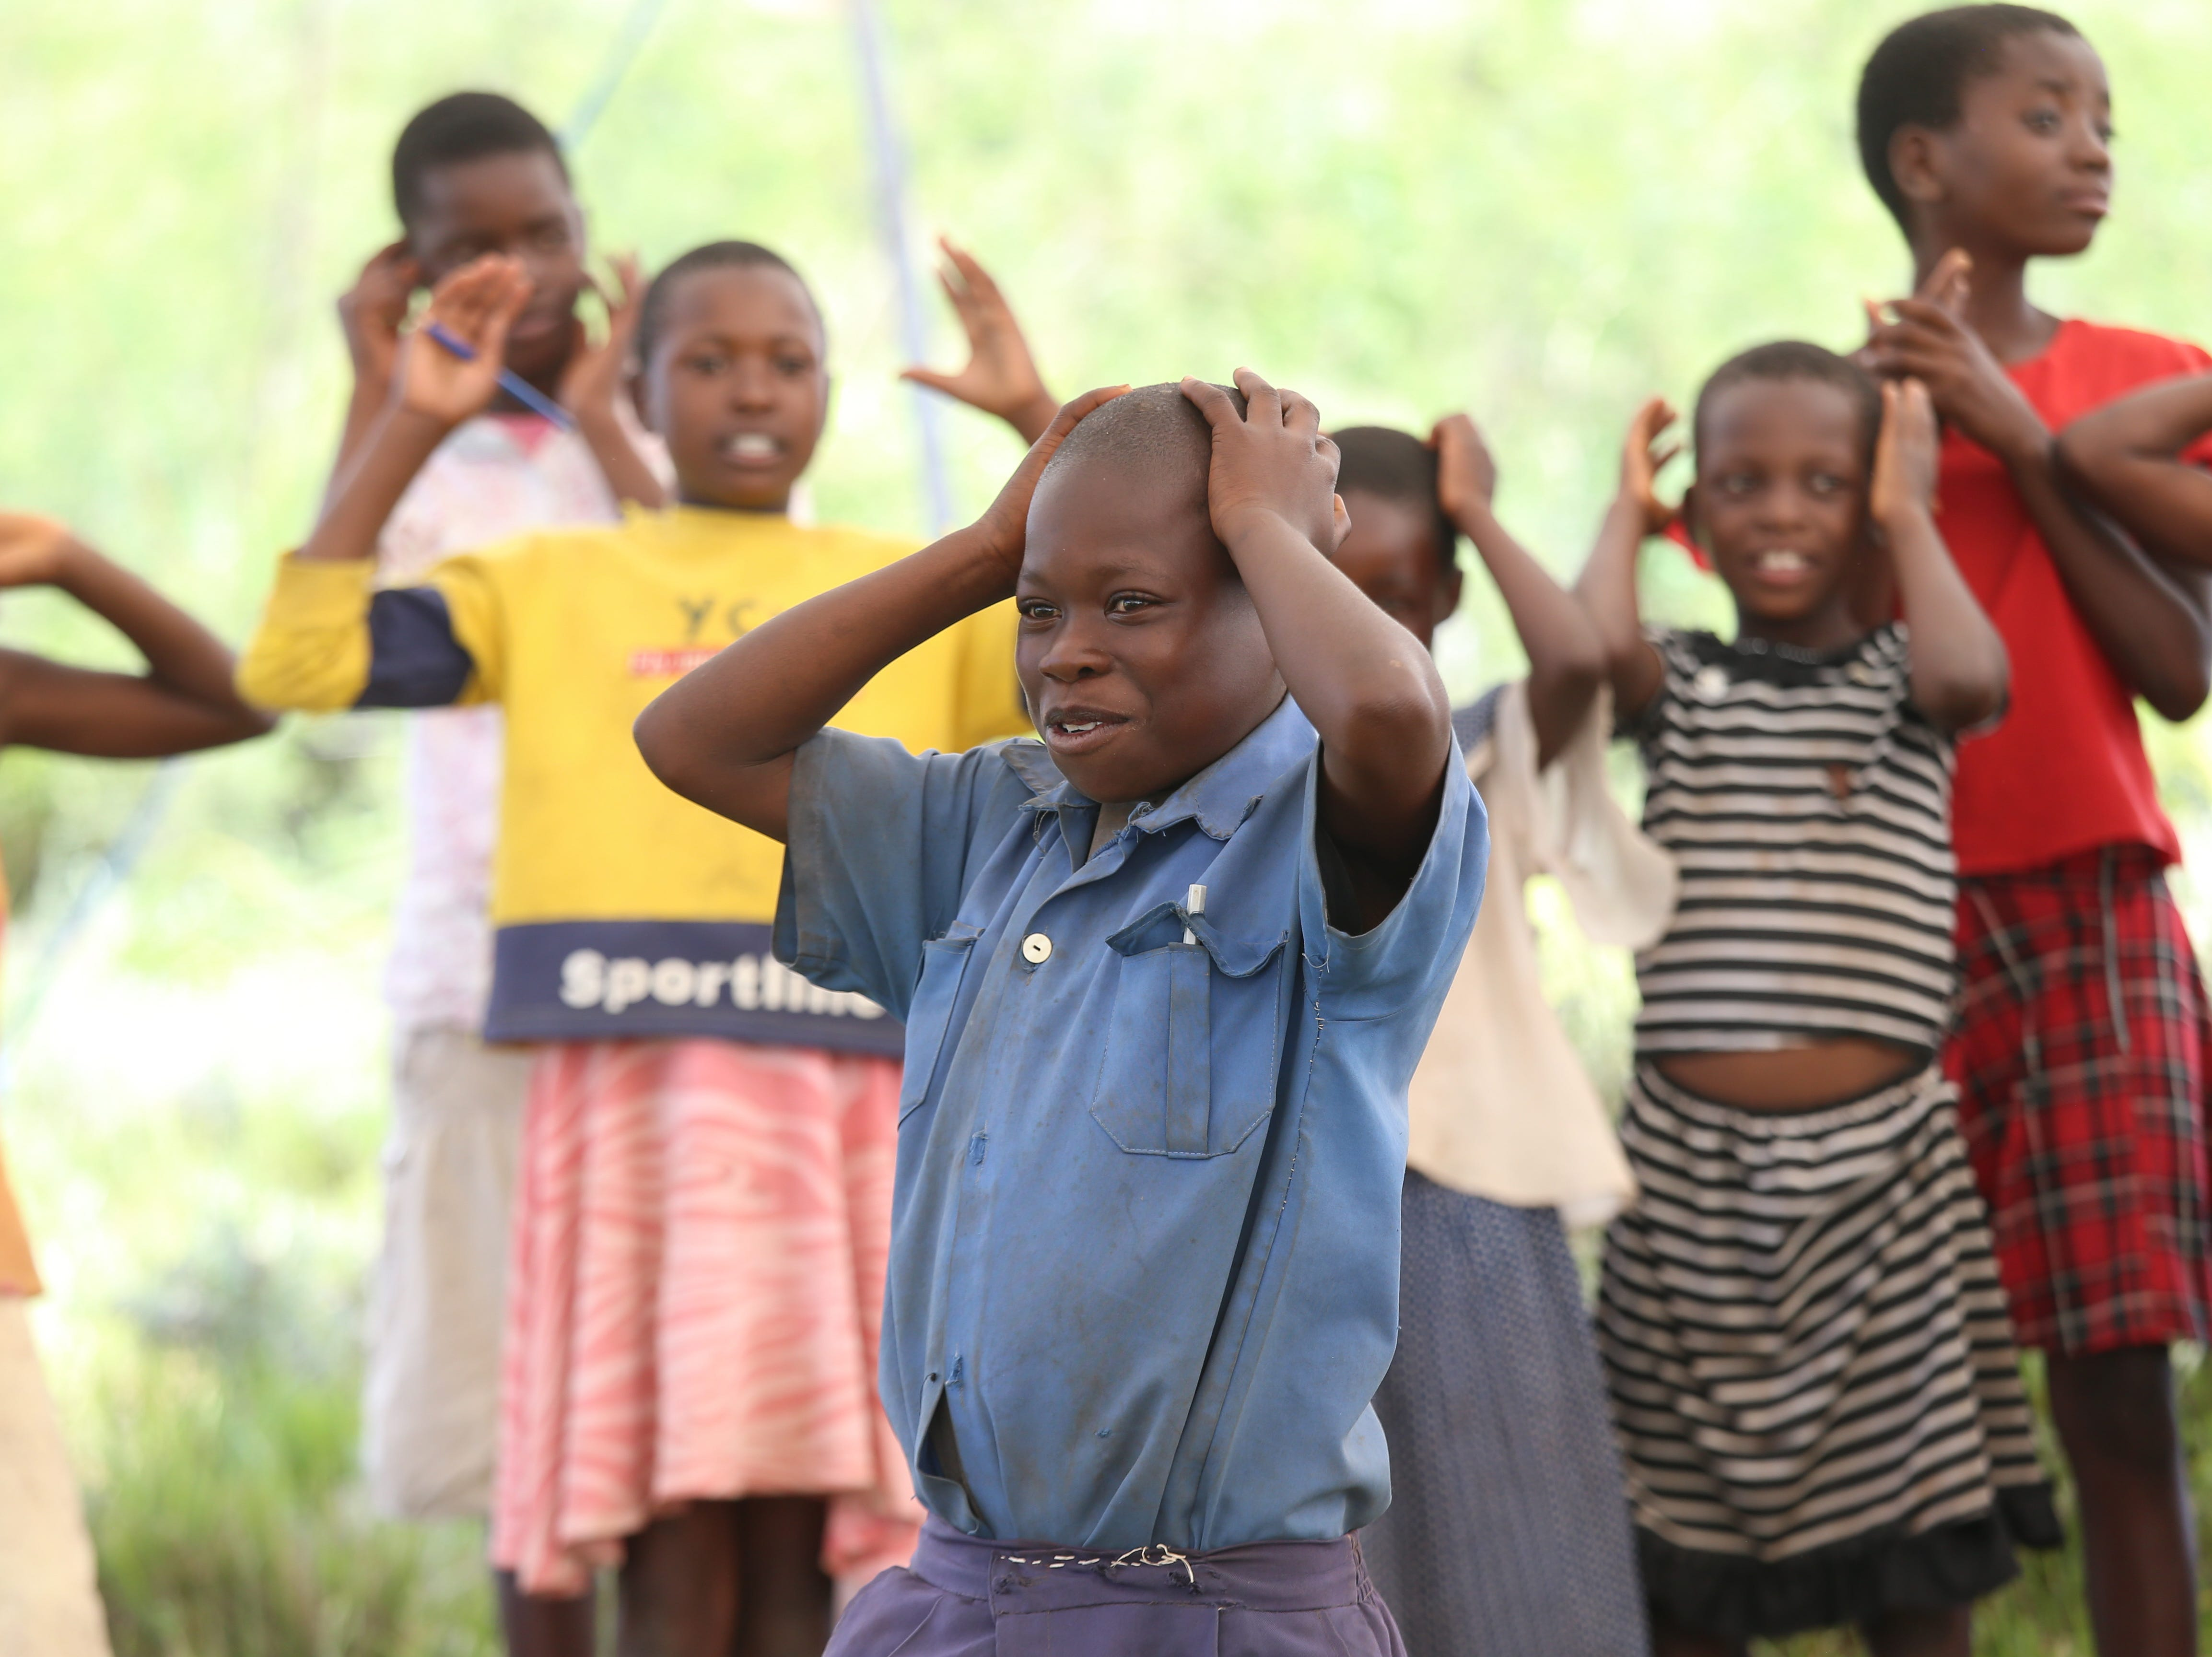 Children who have been unable to attend school after Cyclone Idai are being educated by the Regional Psychosocial Support Initiative (REPSSI), which offers psychosocial support, technical expert, capacity builder and advocacy.